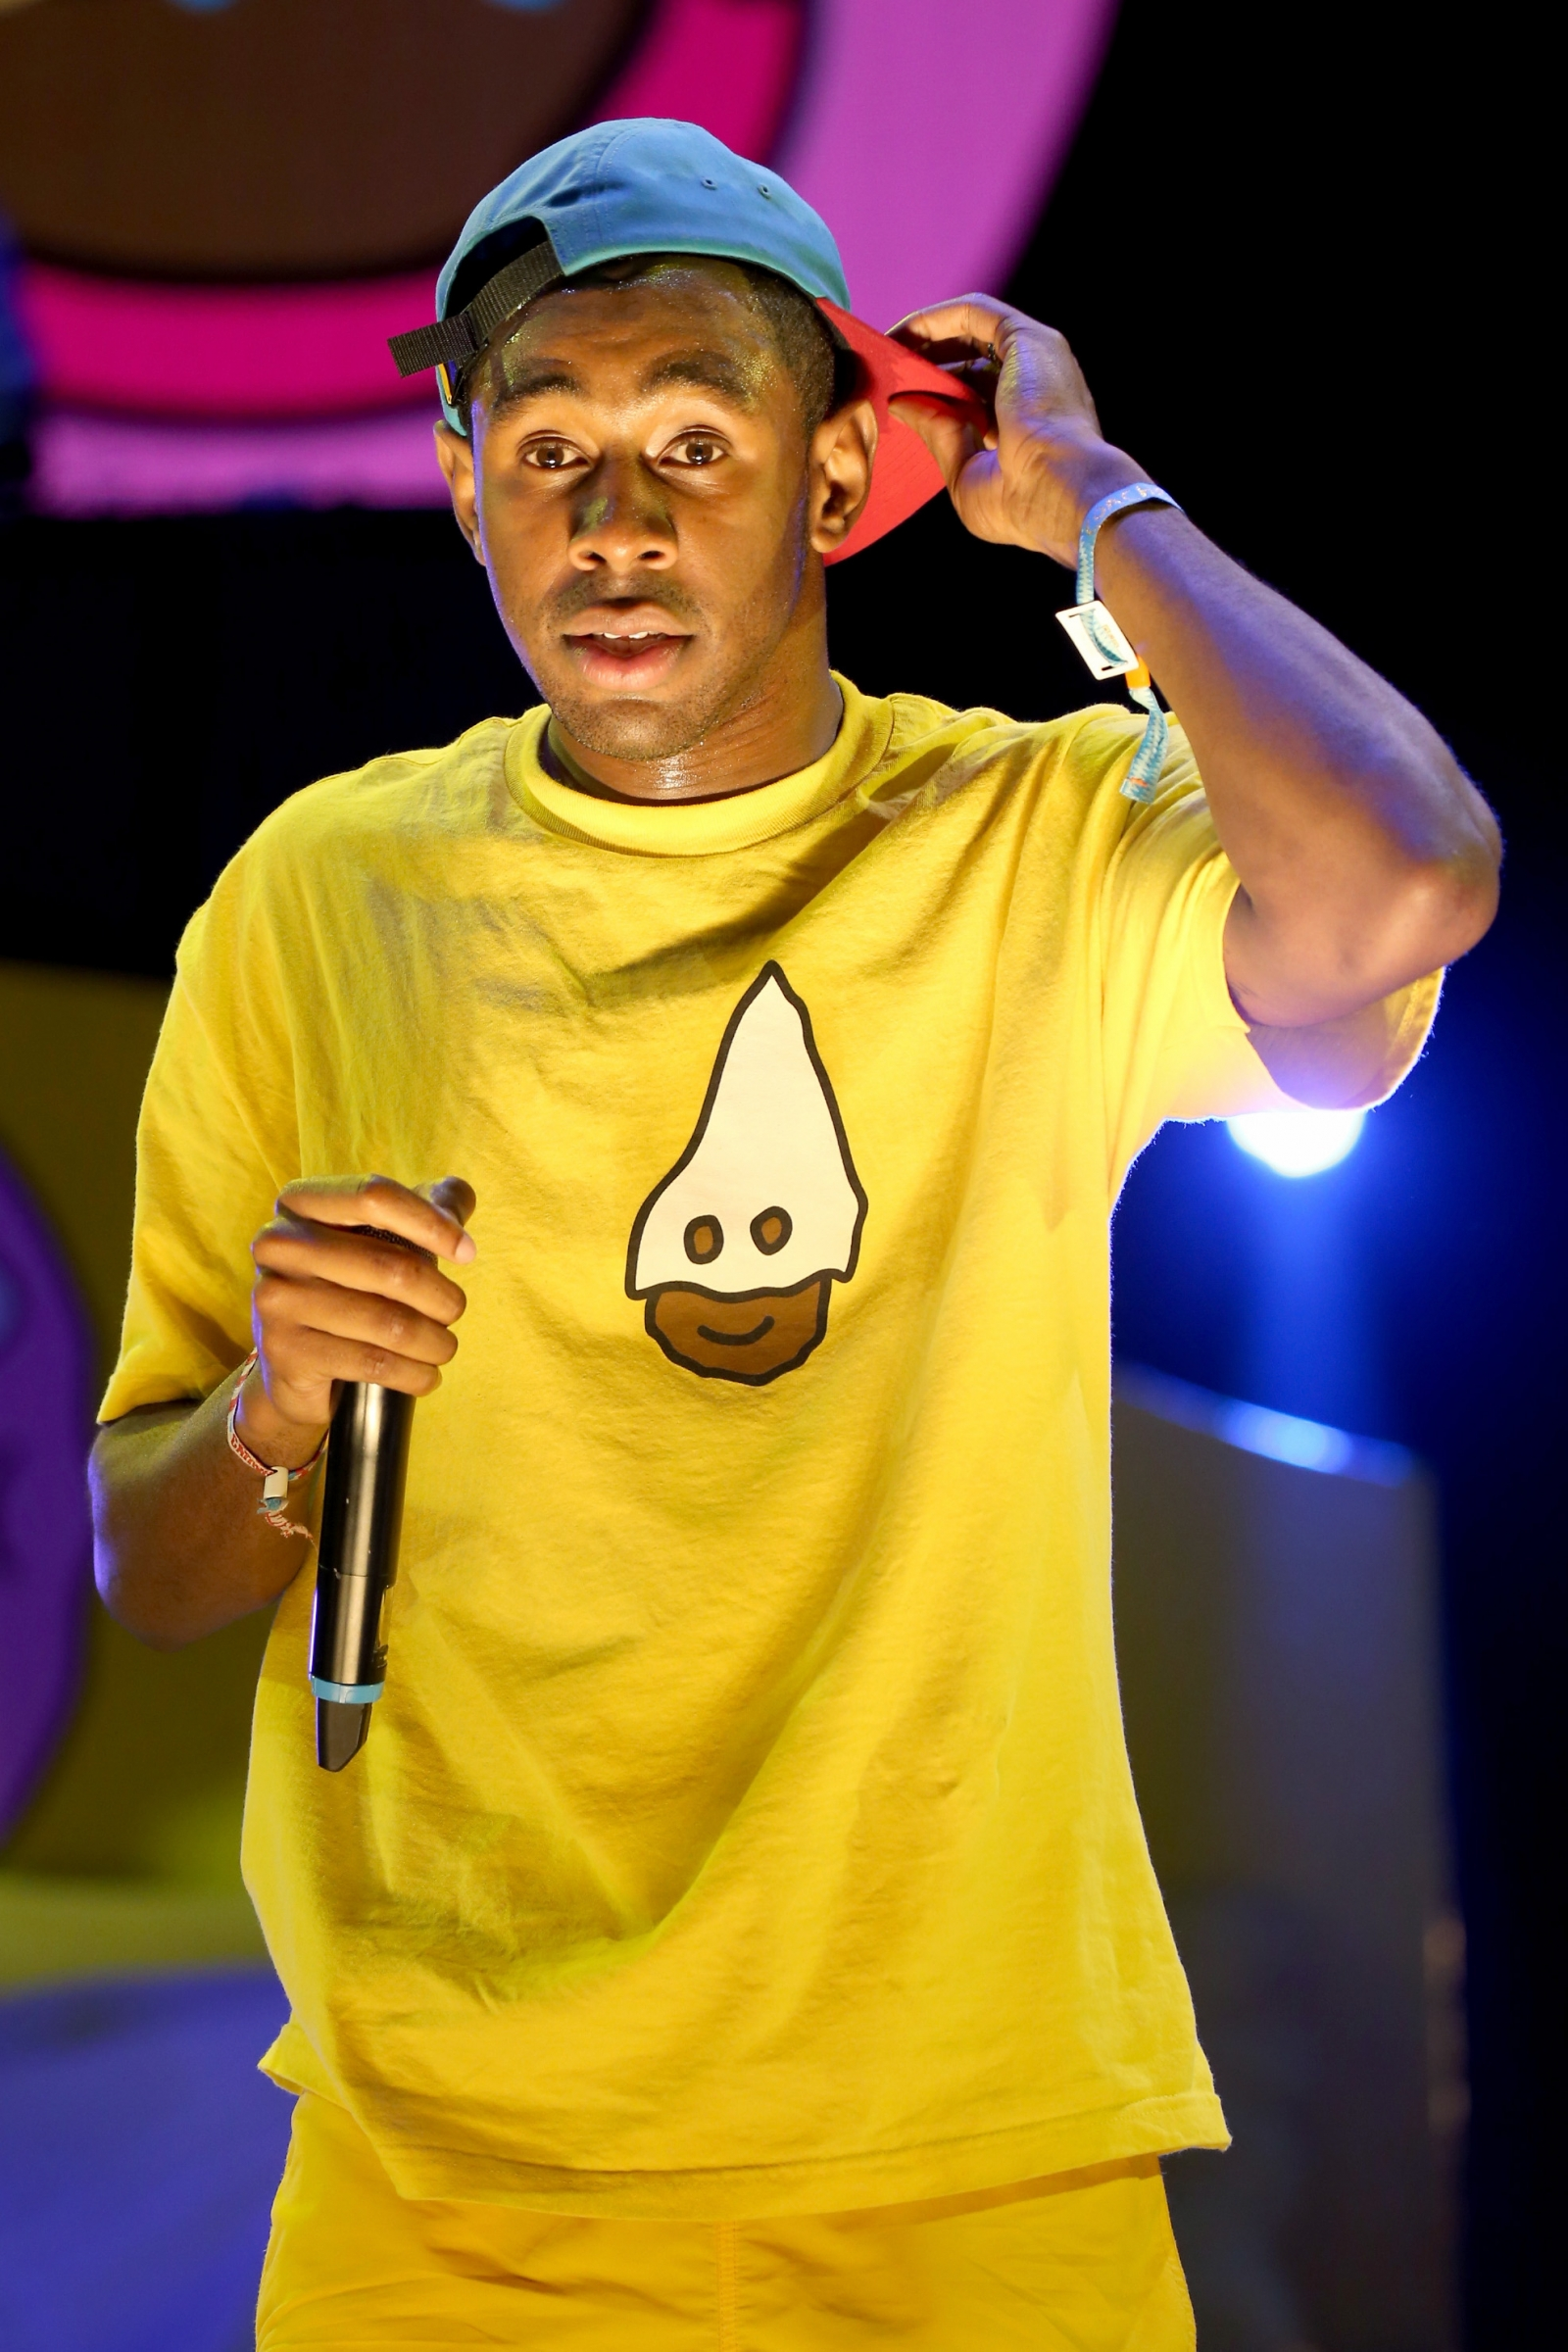 Tyler, The Creator banned from UK due to \'homophobic lyrics